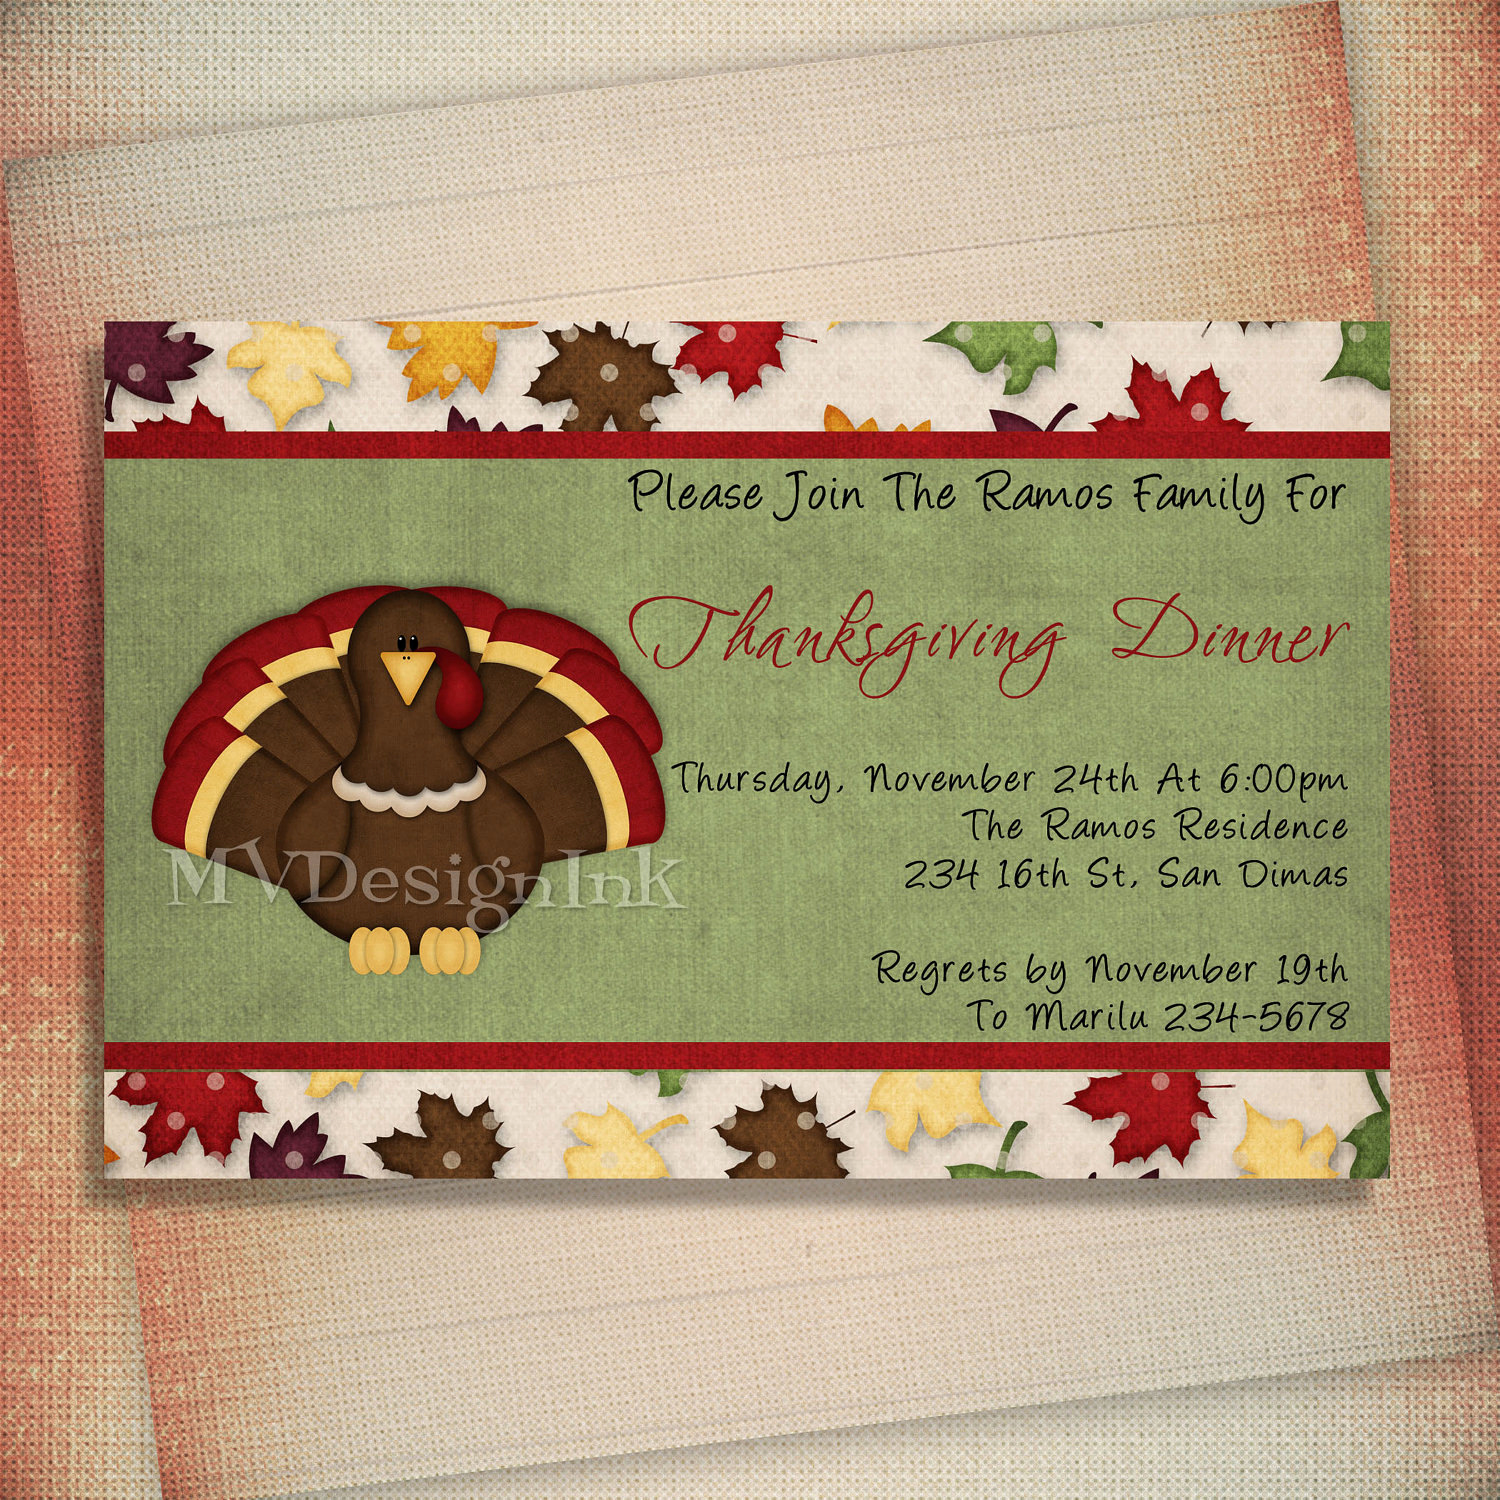 Potluck Dinner Invitation Wording Beautiful Thanksgiving Dinner Invitation Thanksgiving Potluck by